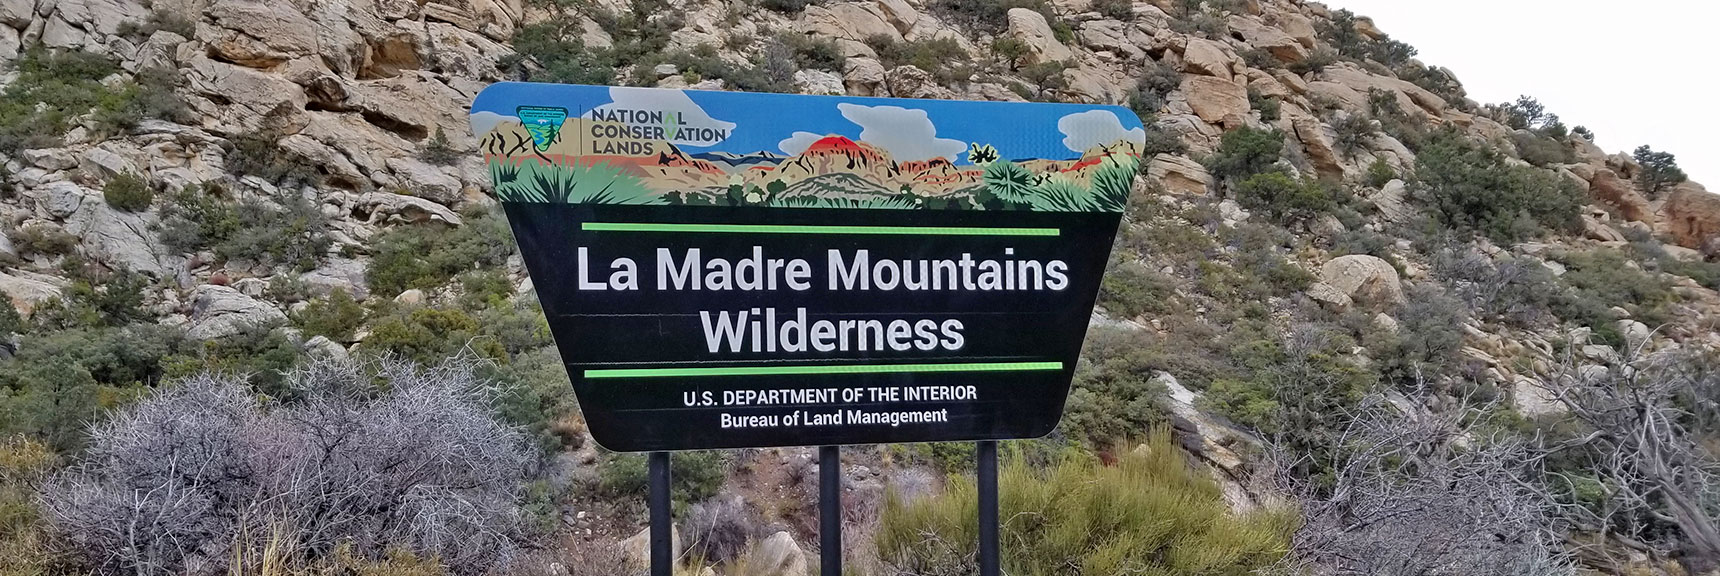 La Madre Mountains Wilderness Entrance at White Rock Mountain Loop in Red Rock Park, Nevada